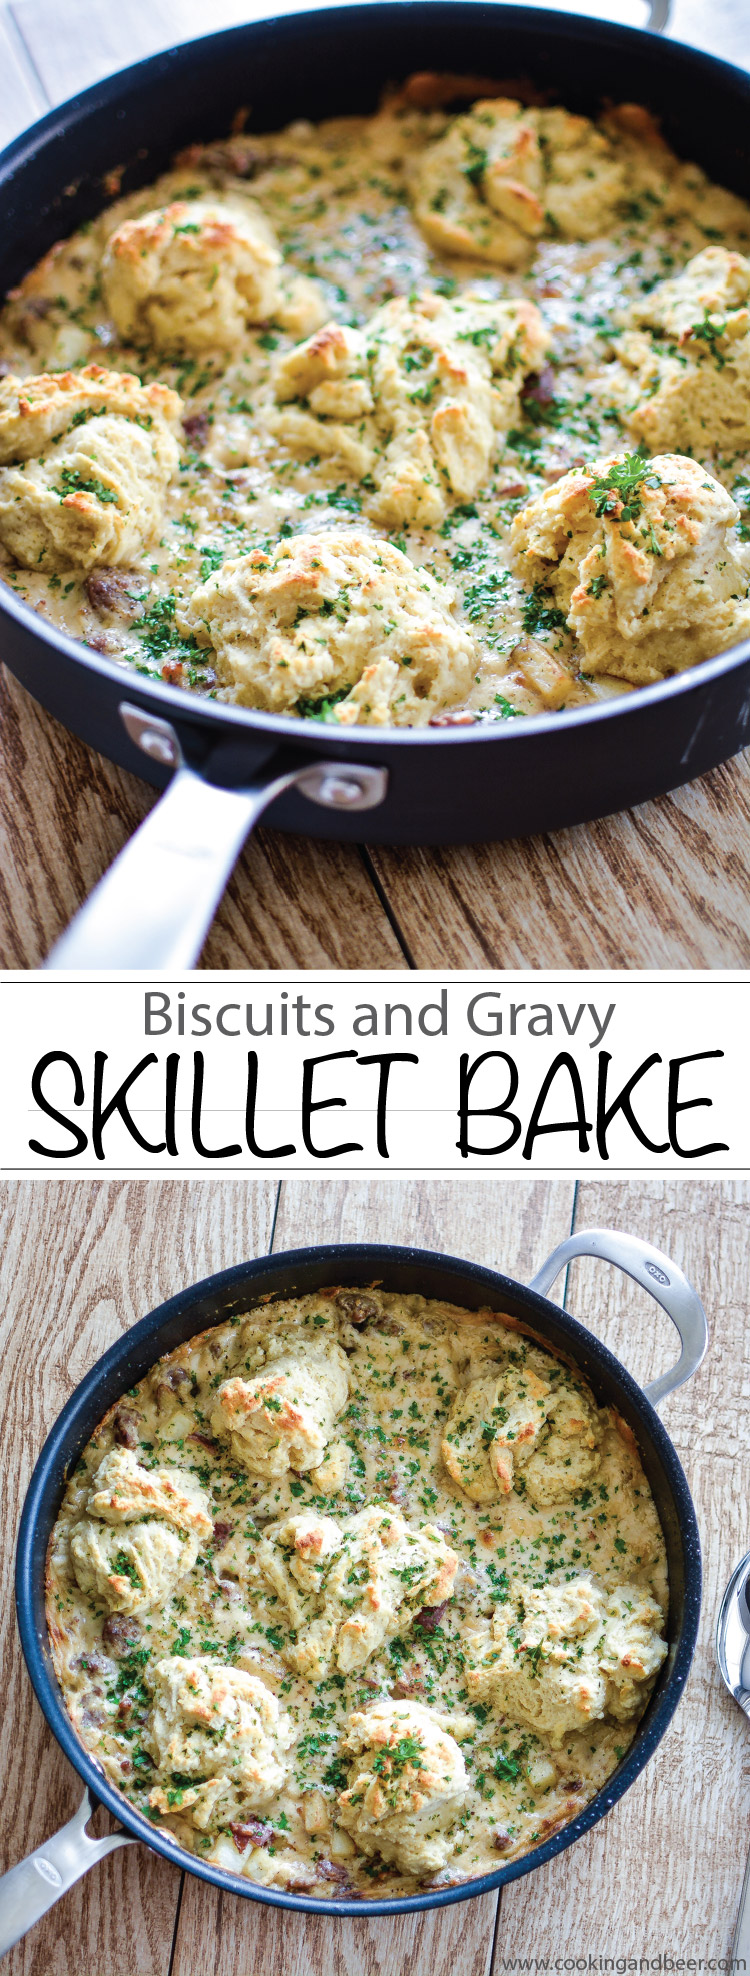 Biscuits and Gravy Skillet Bake: You need this recipe for your next breakfast or brunch party! #OXOCookware | www.cookingandbeer.com